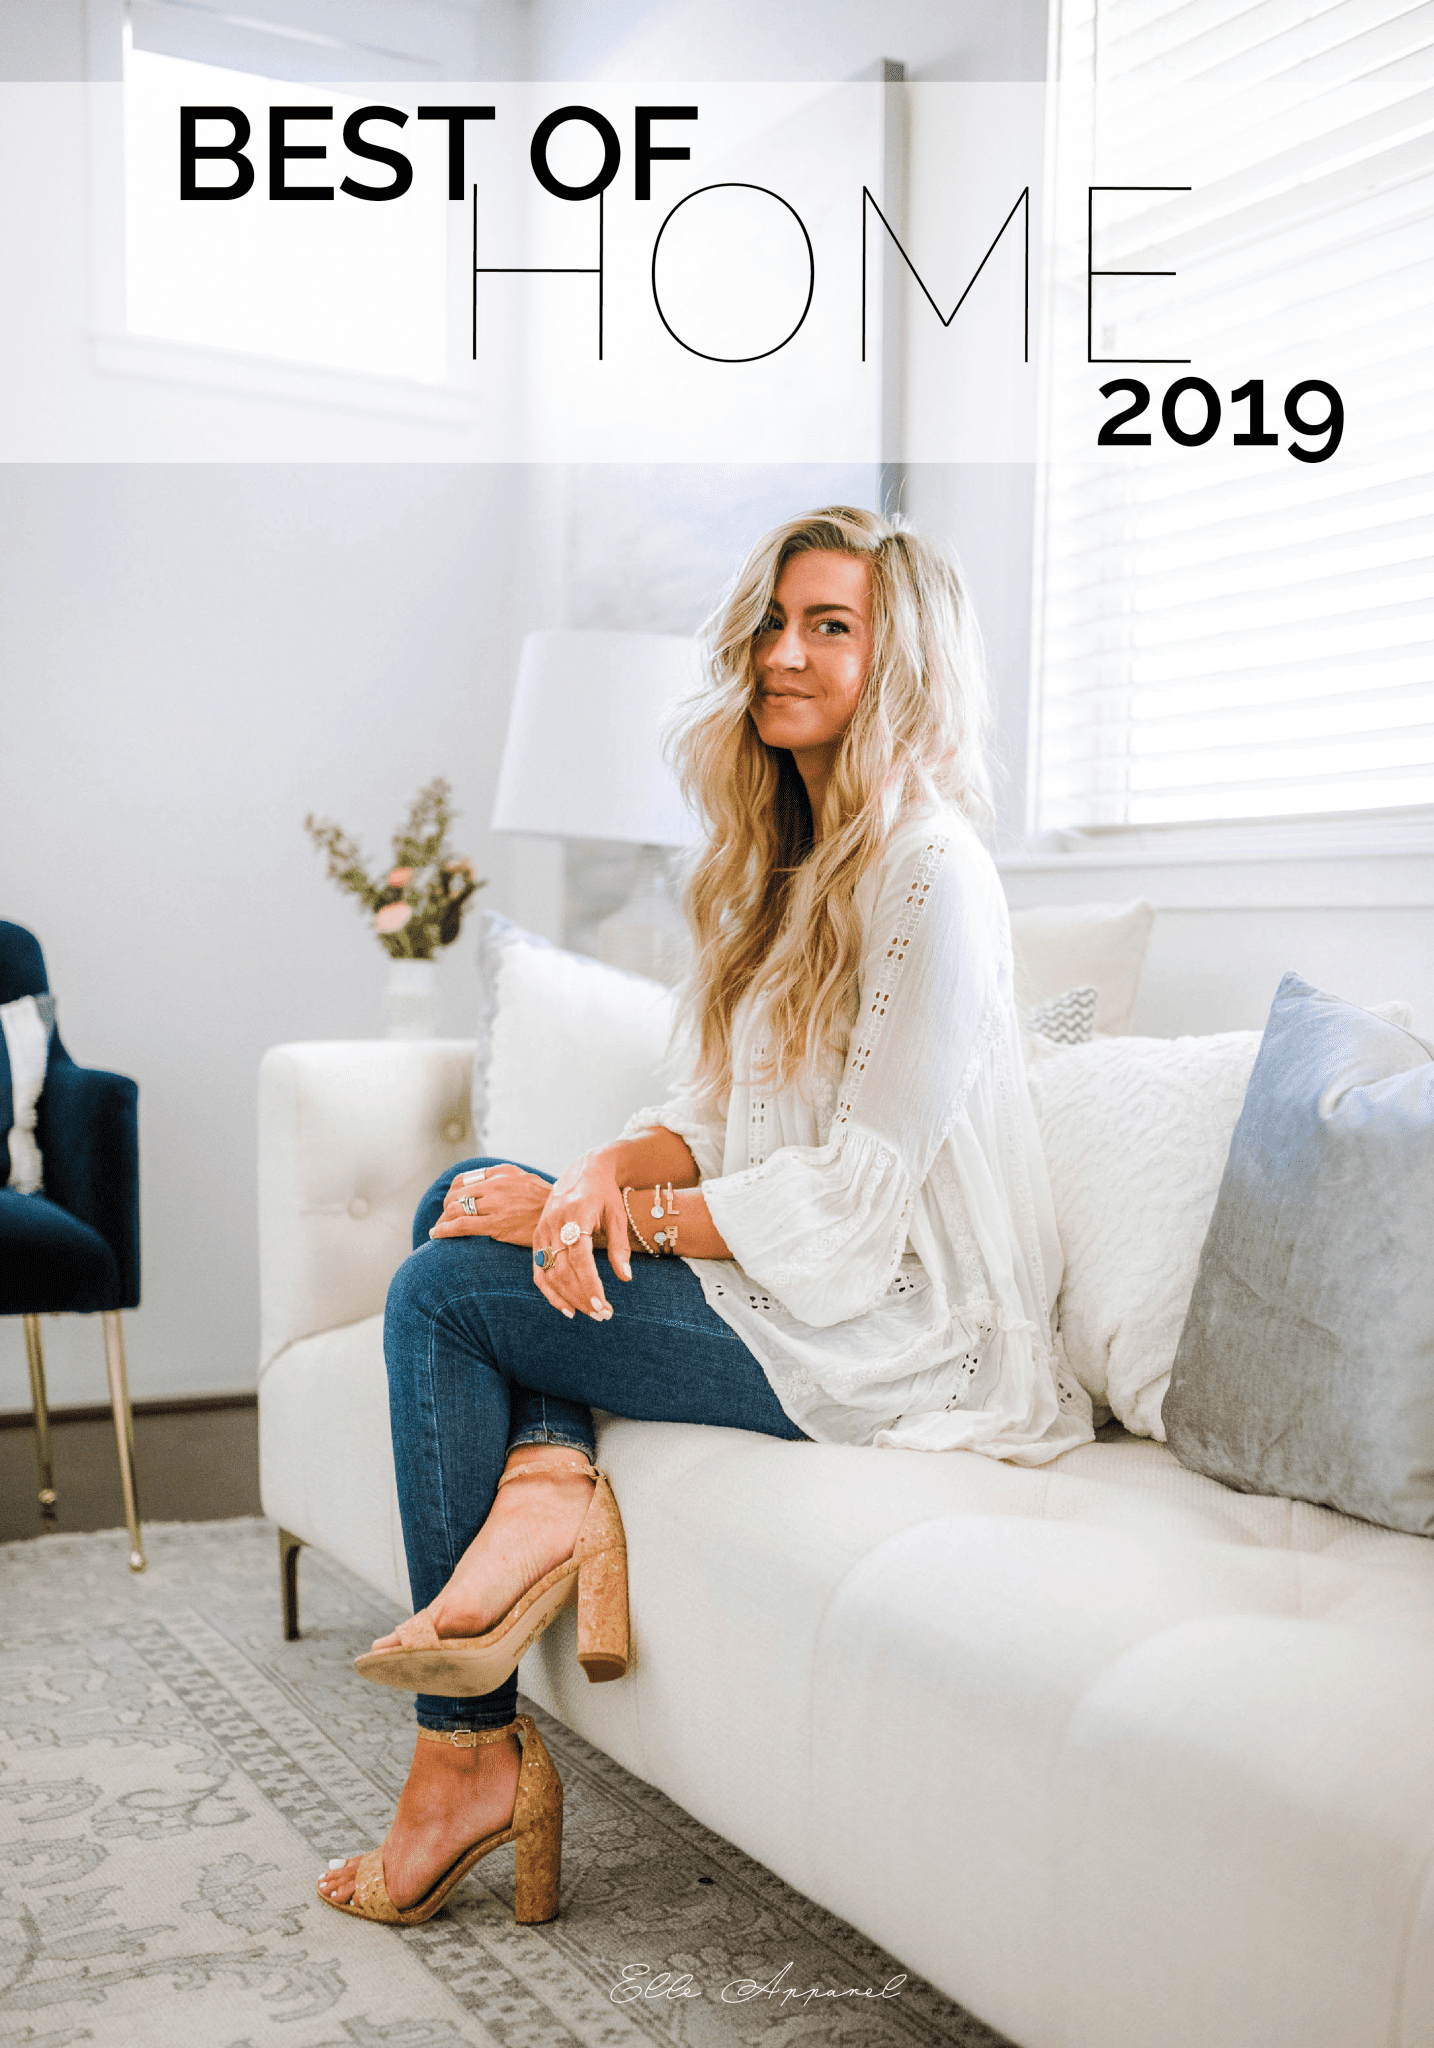 Top 10 home products of 2019